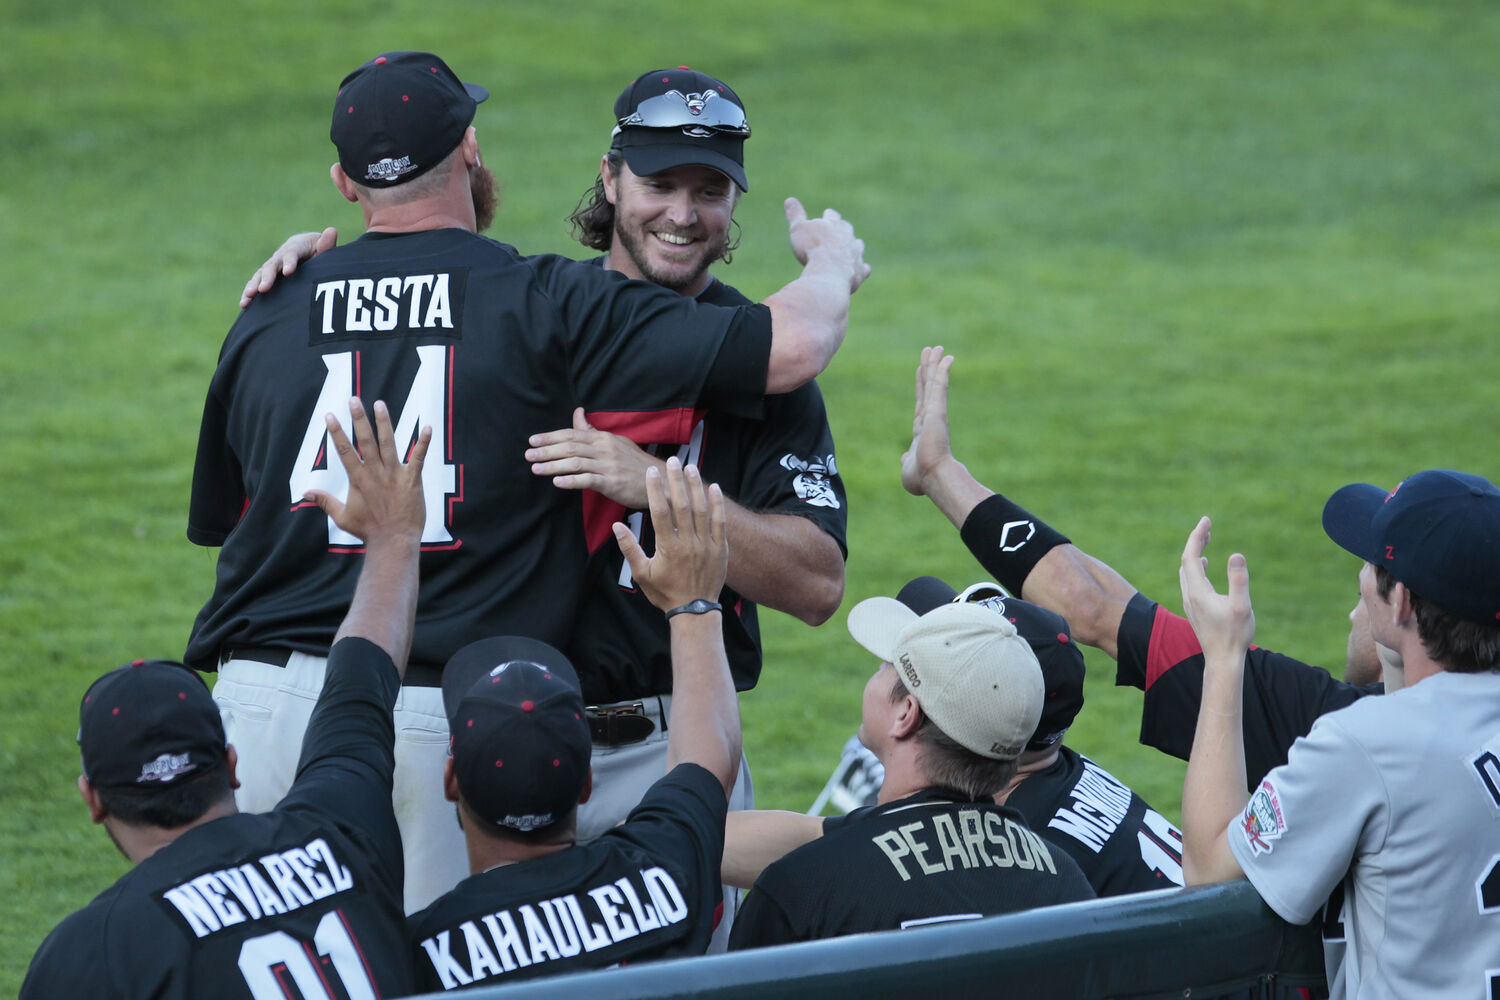 Carlo Testa of the Wichita Wingnuts is congratulated by his team for winning the title of Fastest Baserunner at the All-Star Skills Competition in Winnipeg Monday. (John Woods / WInnipeg Free Press)